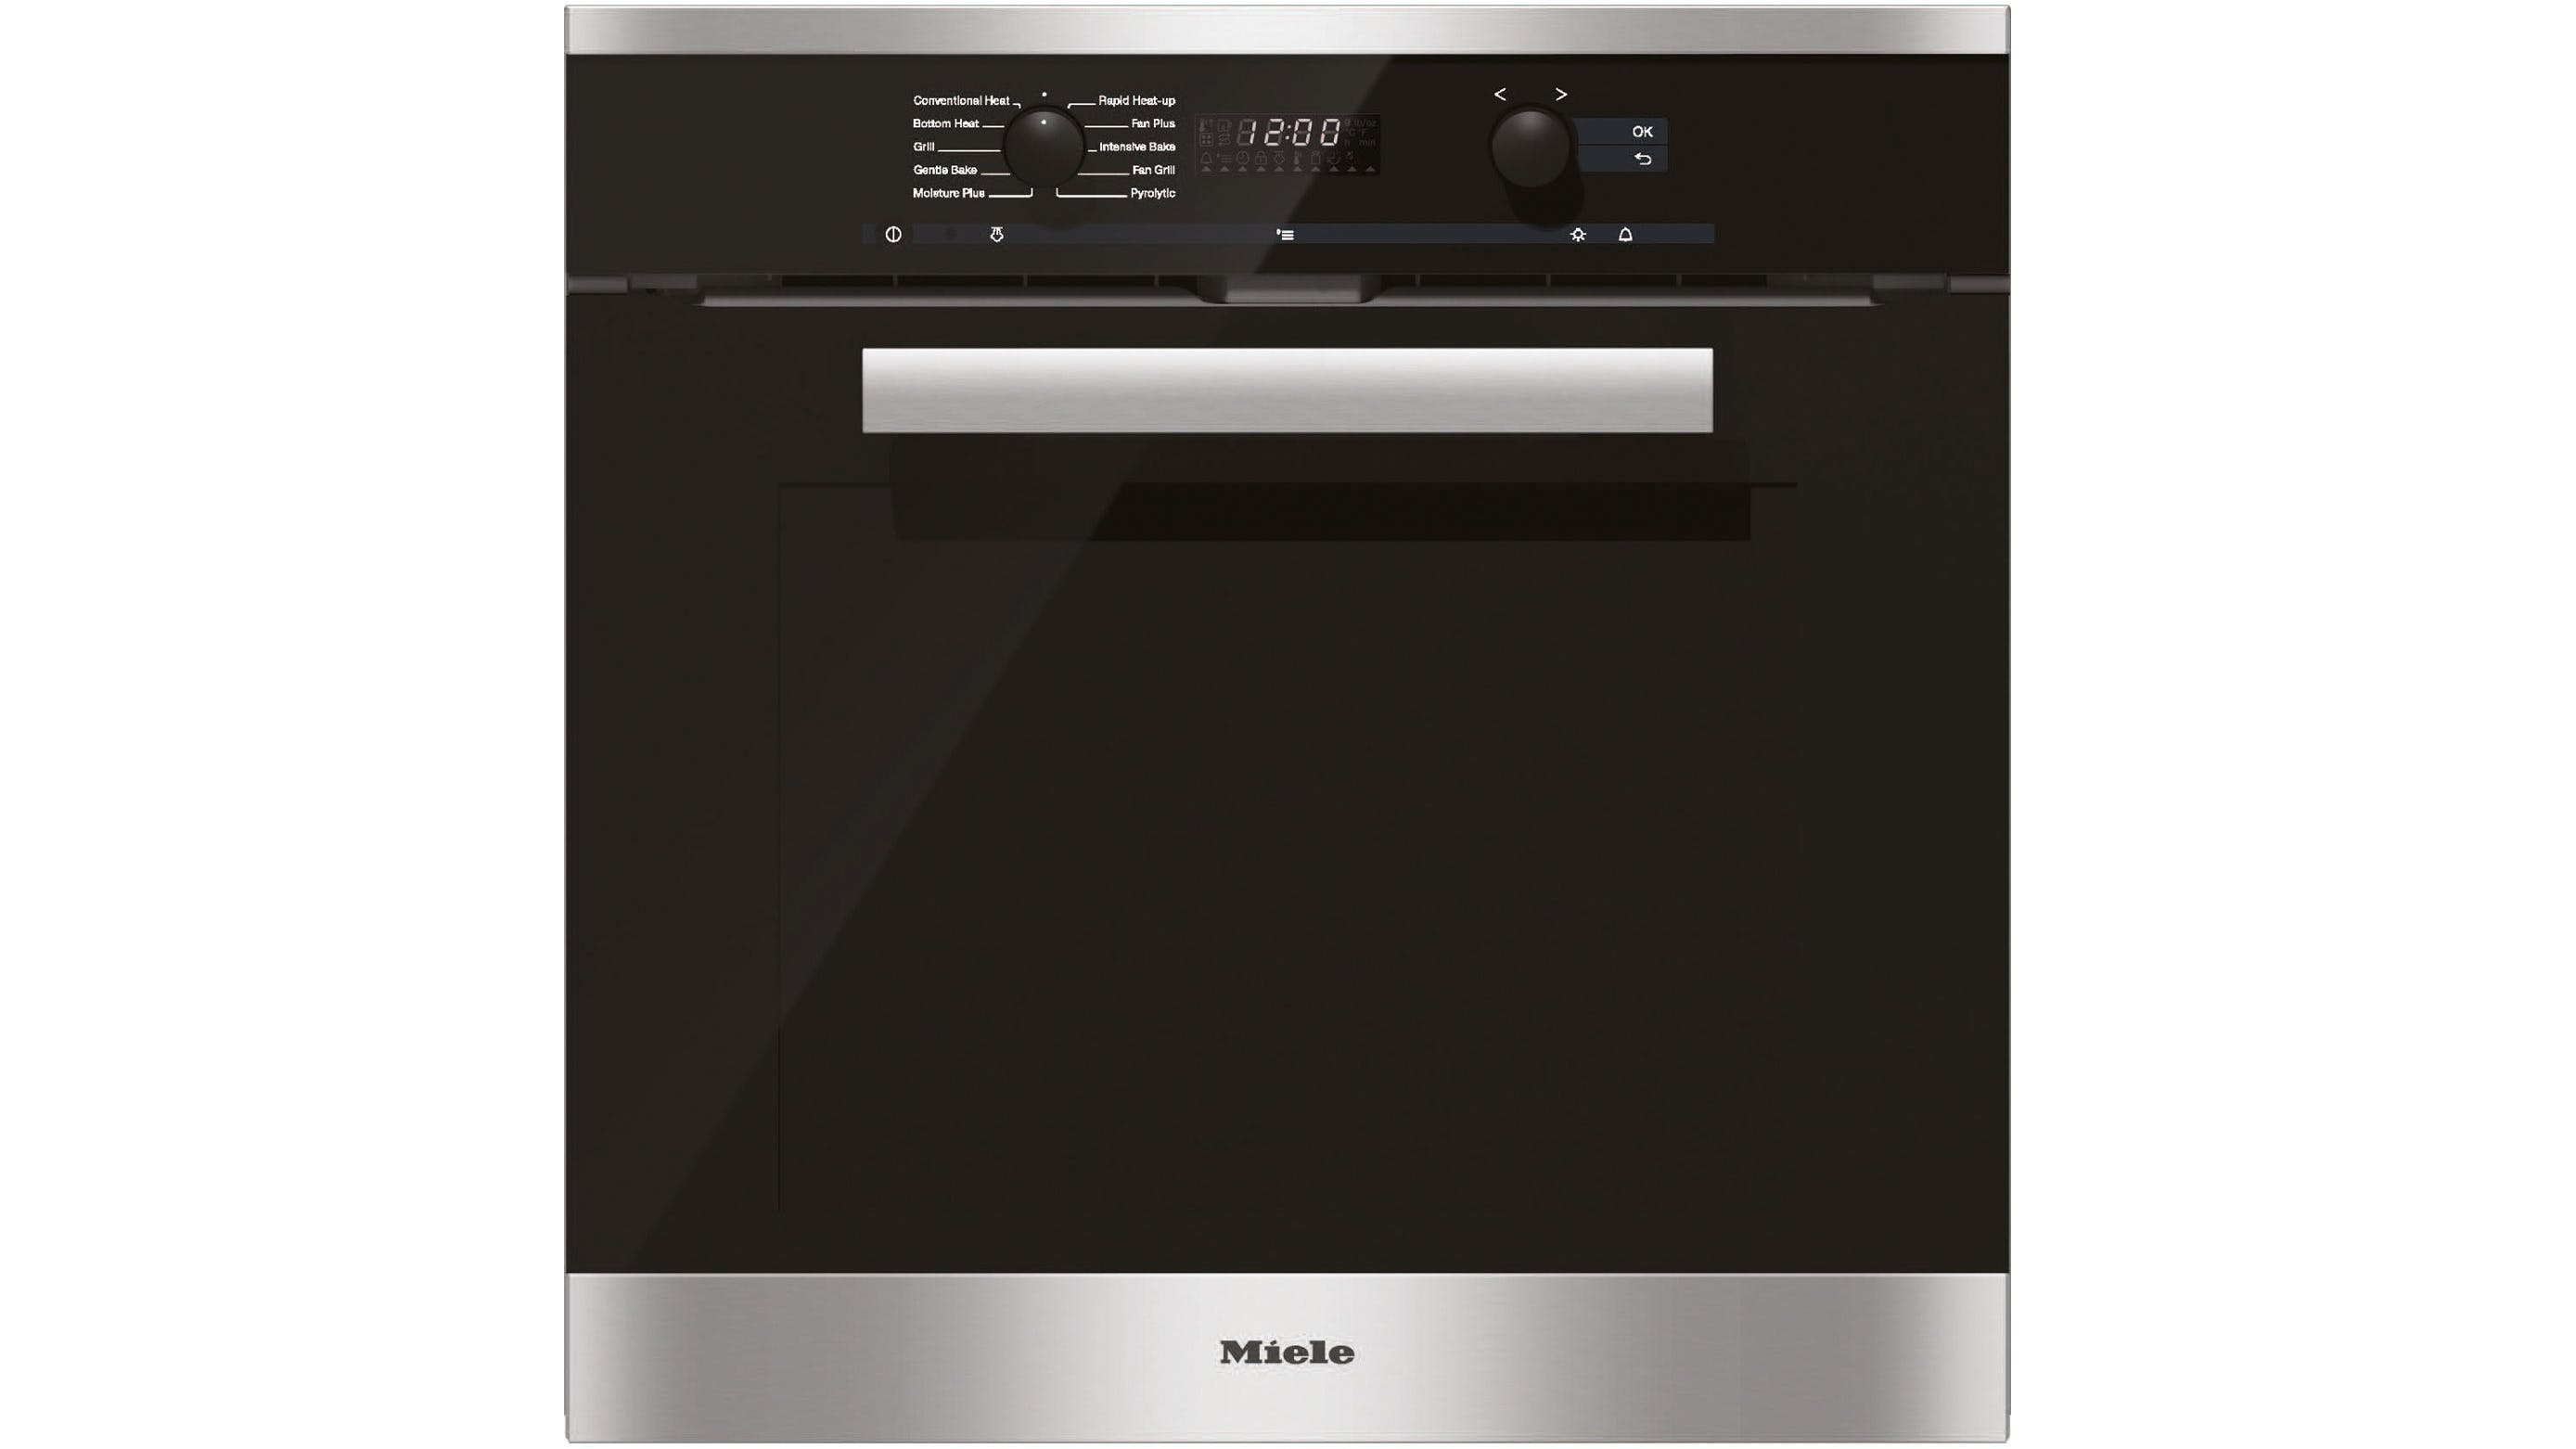 Miele Pyrolytic Oven - 60cm | Domayne